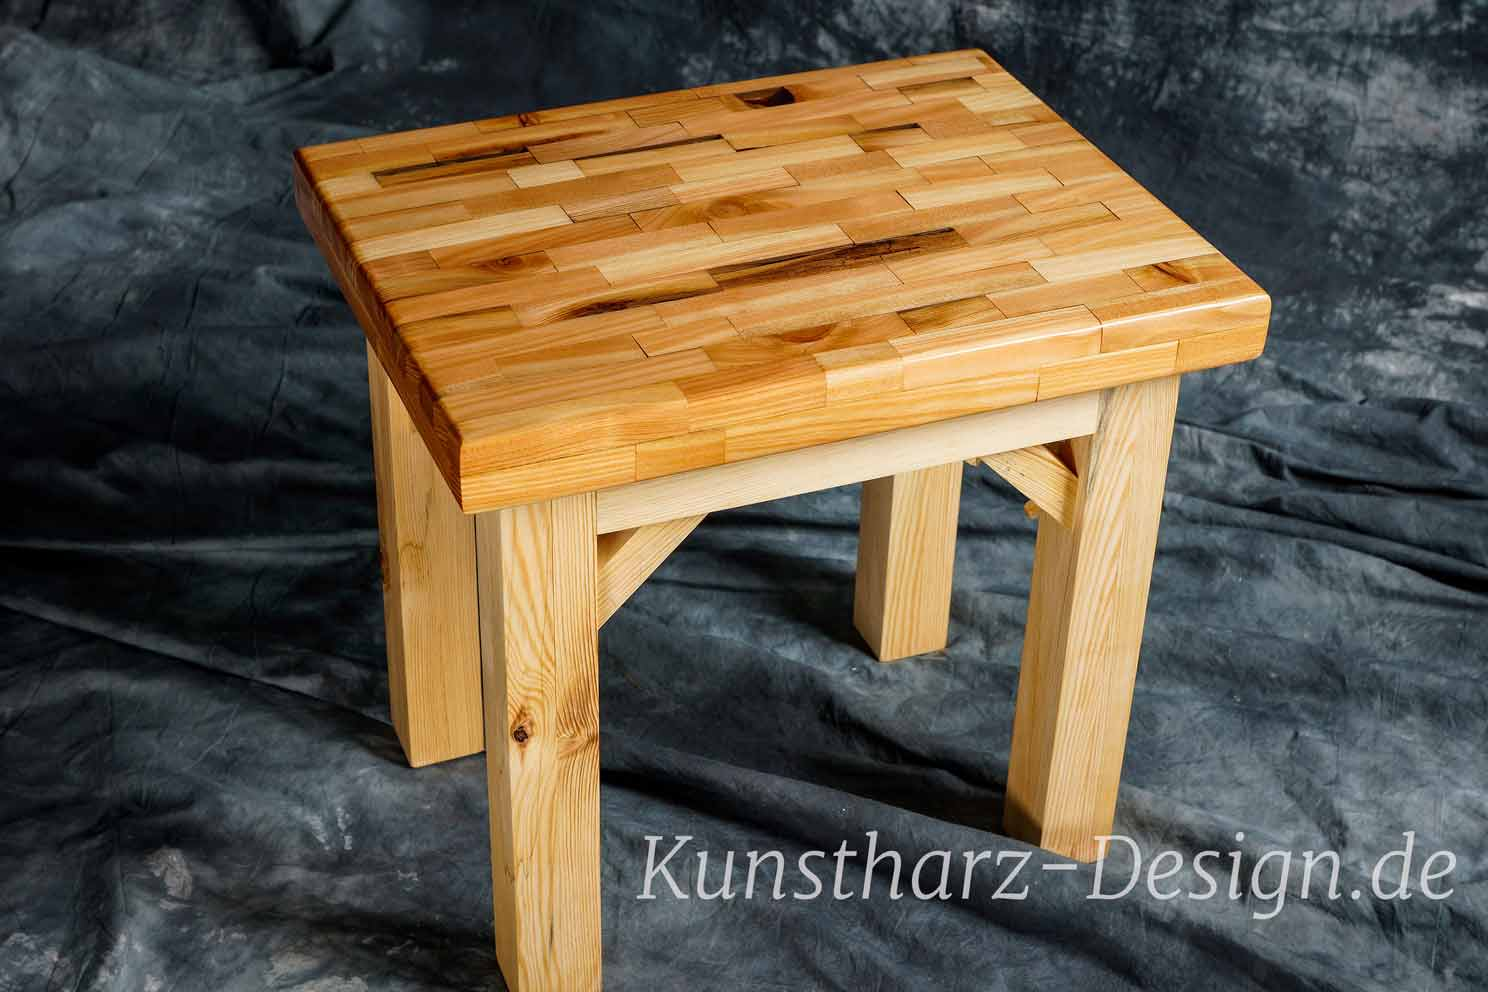 Tables And Furniture Made Of Epoxy Resin And Wood Unique Resin River Table